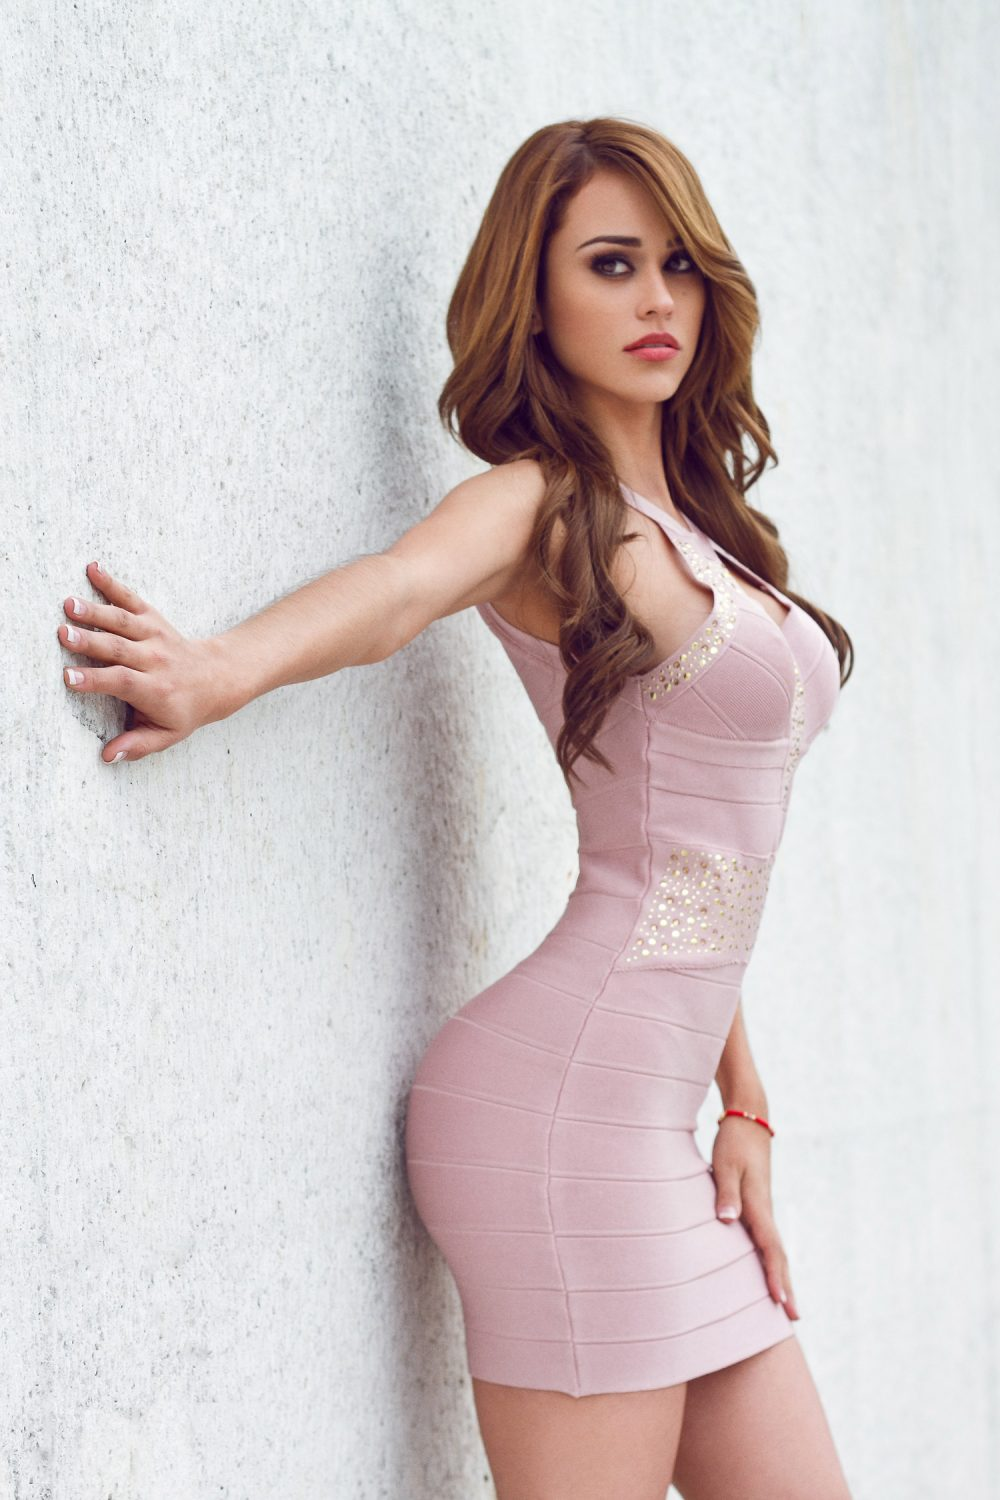 Hot Yanet Garcia nude photos 2019